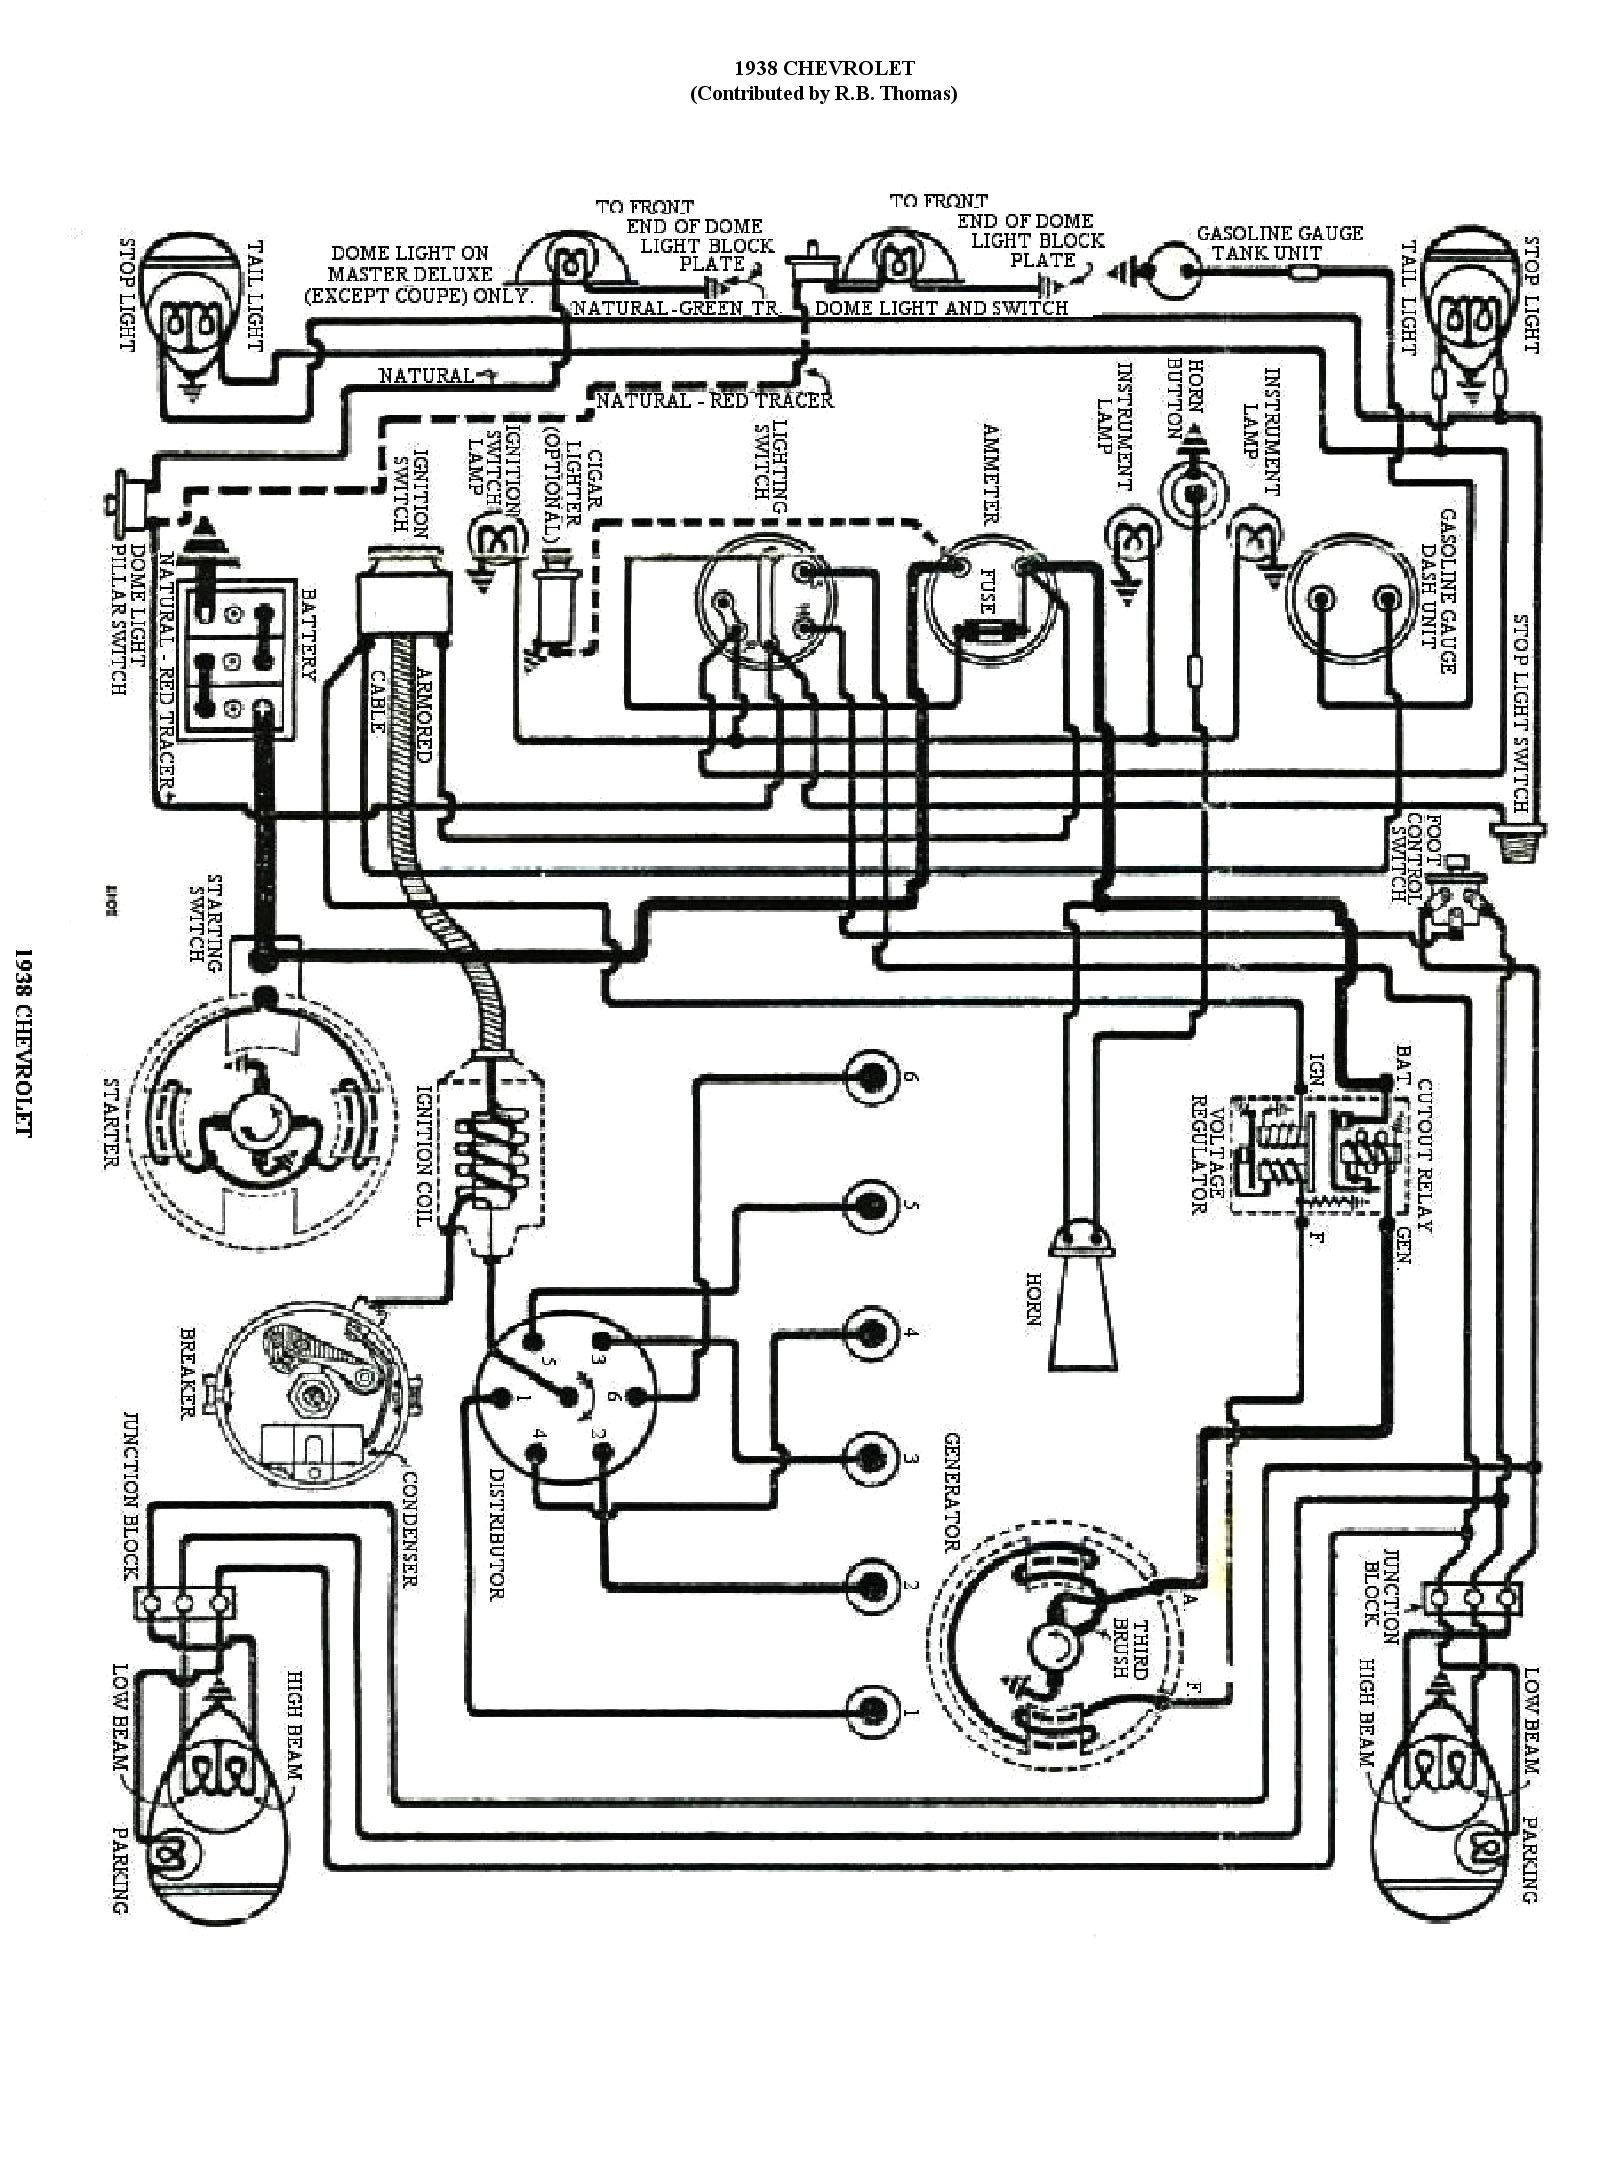 Wiring together with 1940 Desoto Wiring Diagram additionally Car Door Wiring Harness Grommet further Flathead drawings trans likewise 1940 Ford Coupe Wiring Diagram. on 1939 buick special wiring diagram